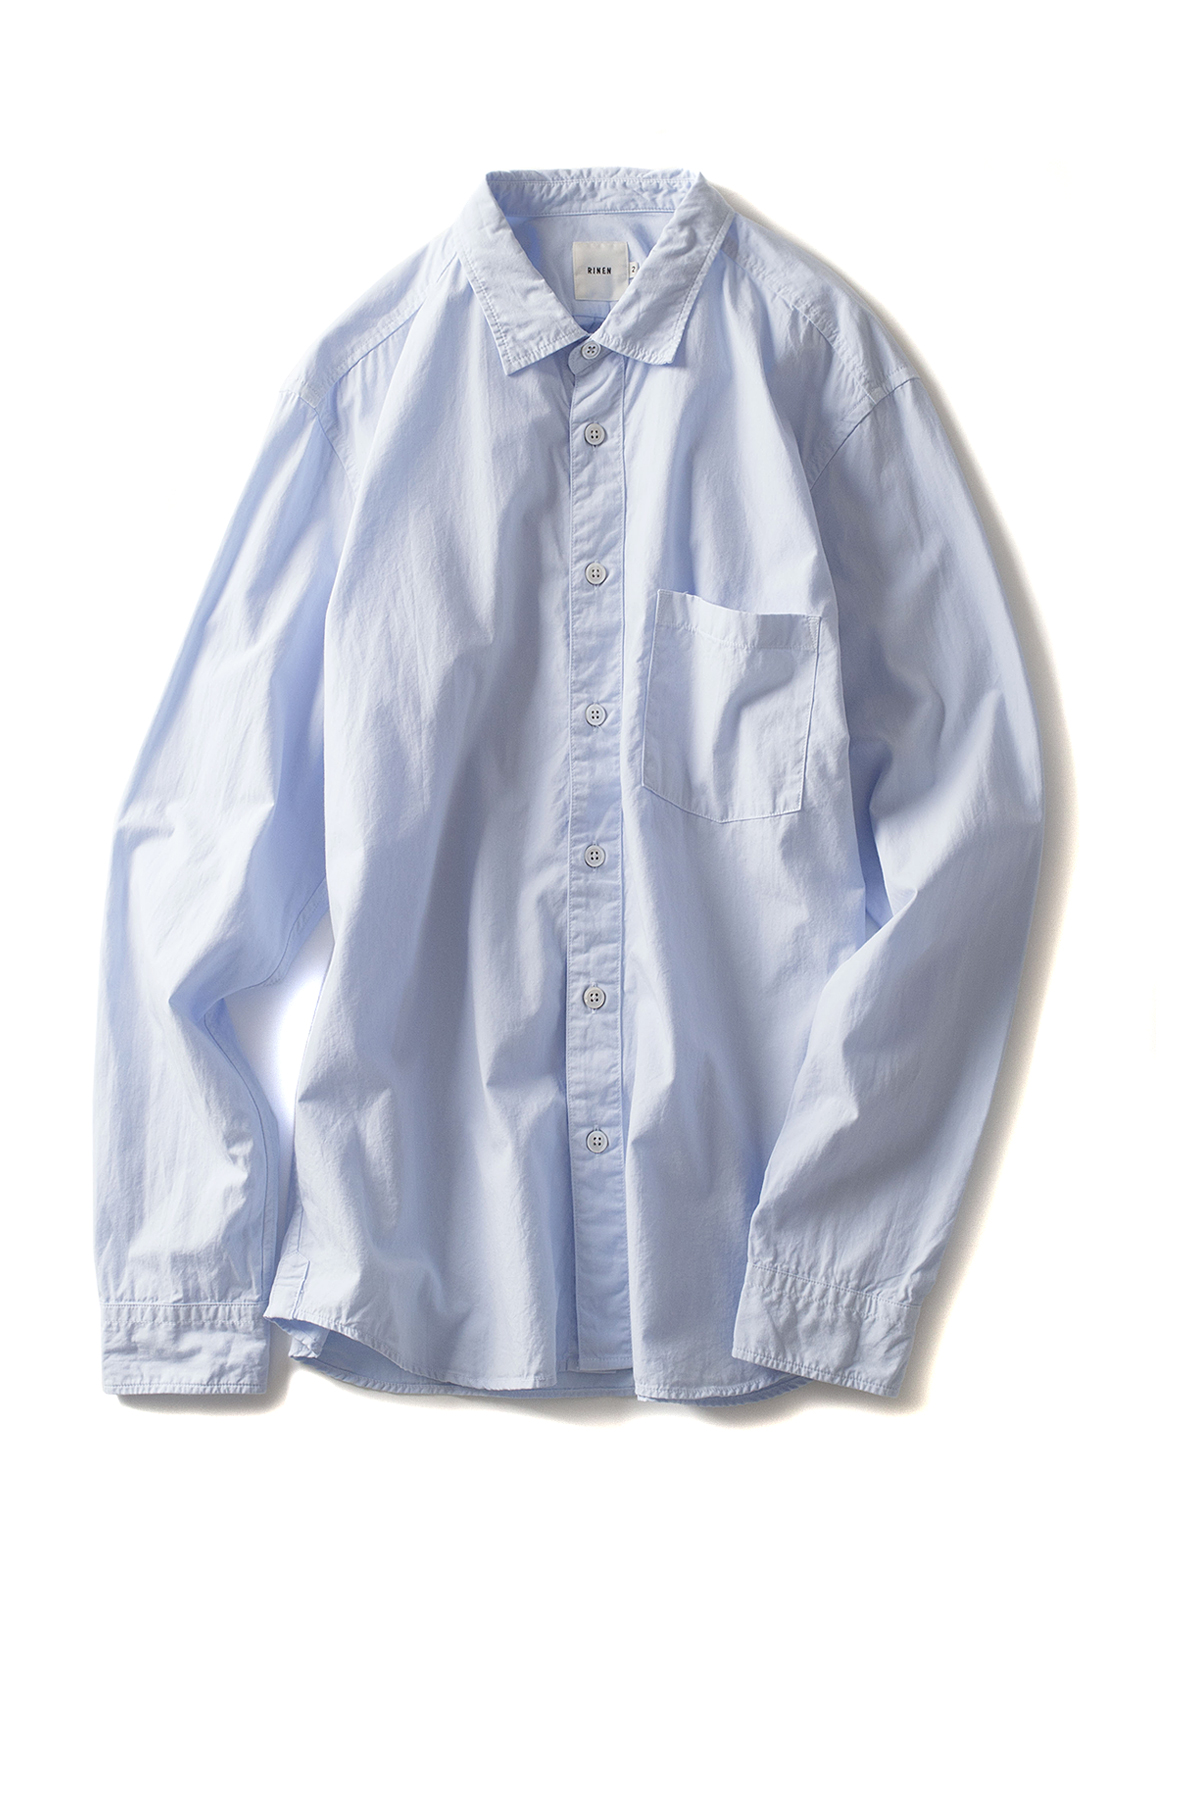 RINEN : Organic Broad Regular Collar Shirt (Sax)